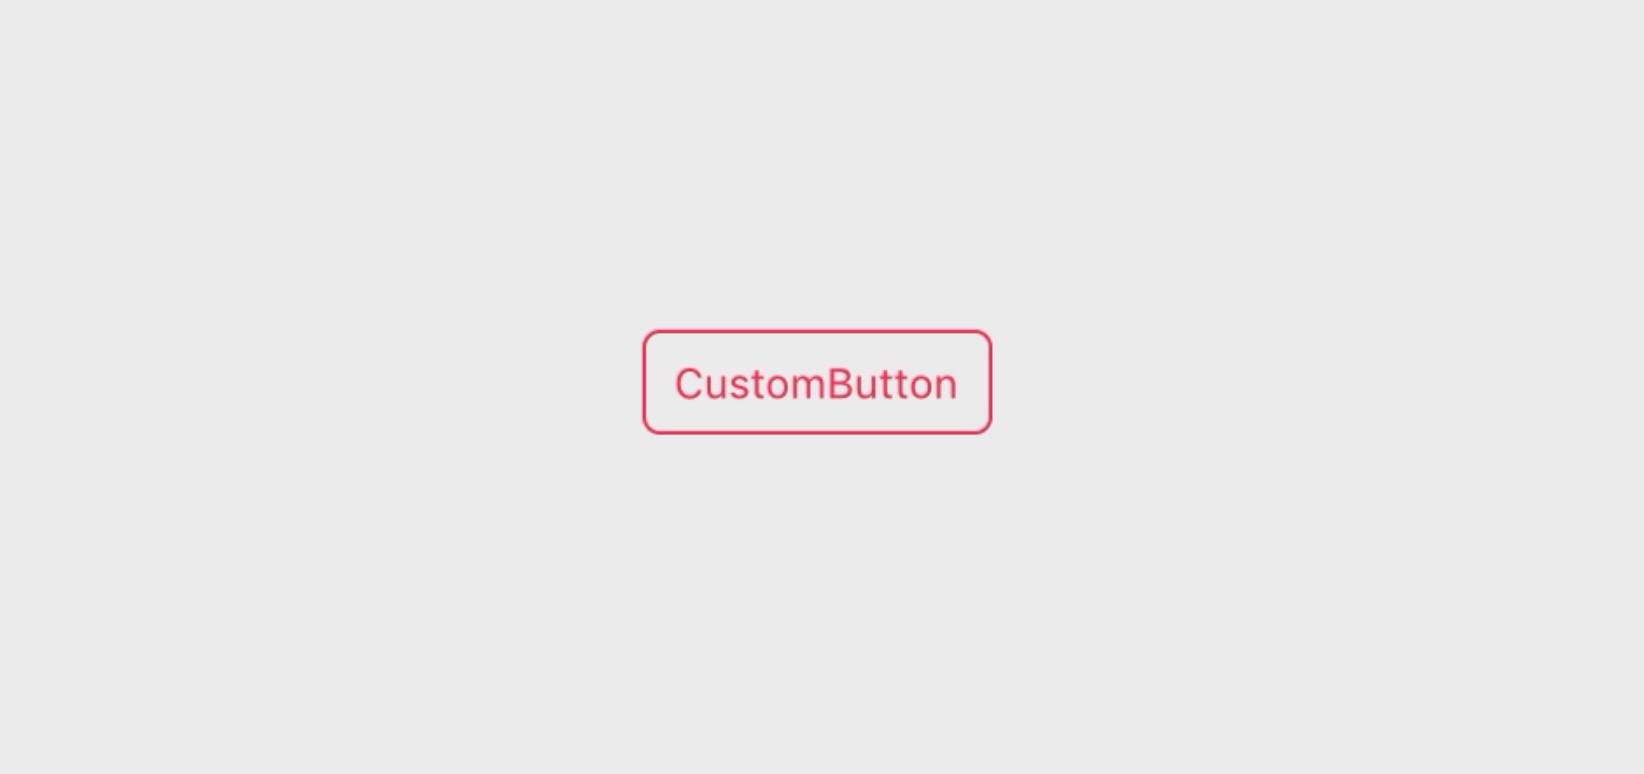 CustomButton screenshot